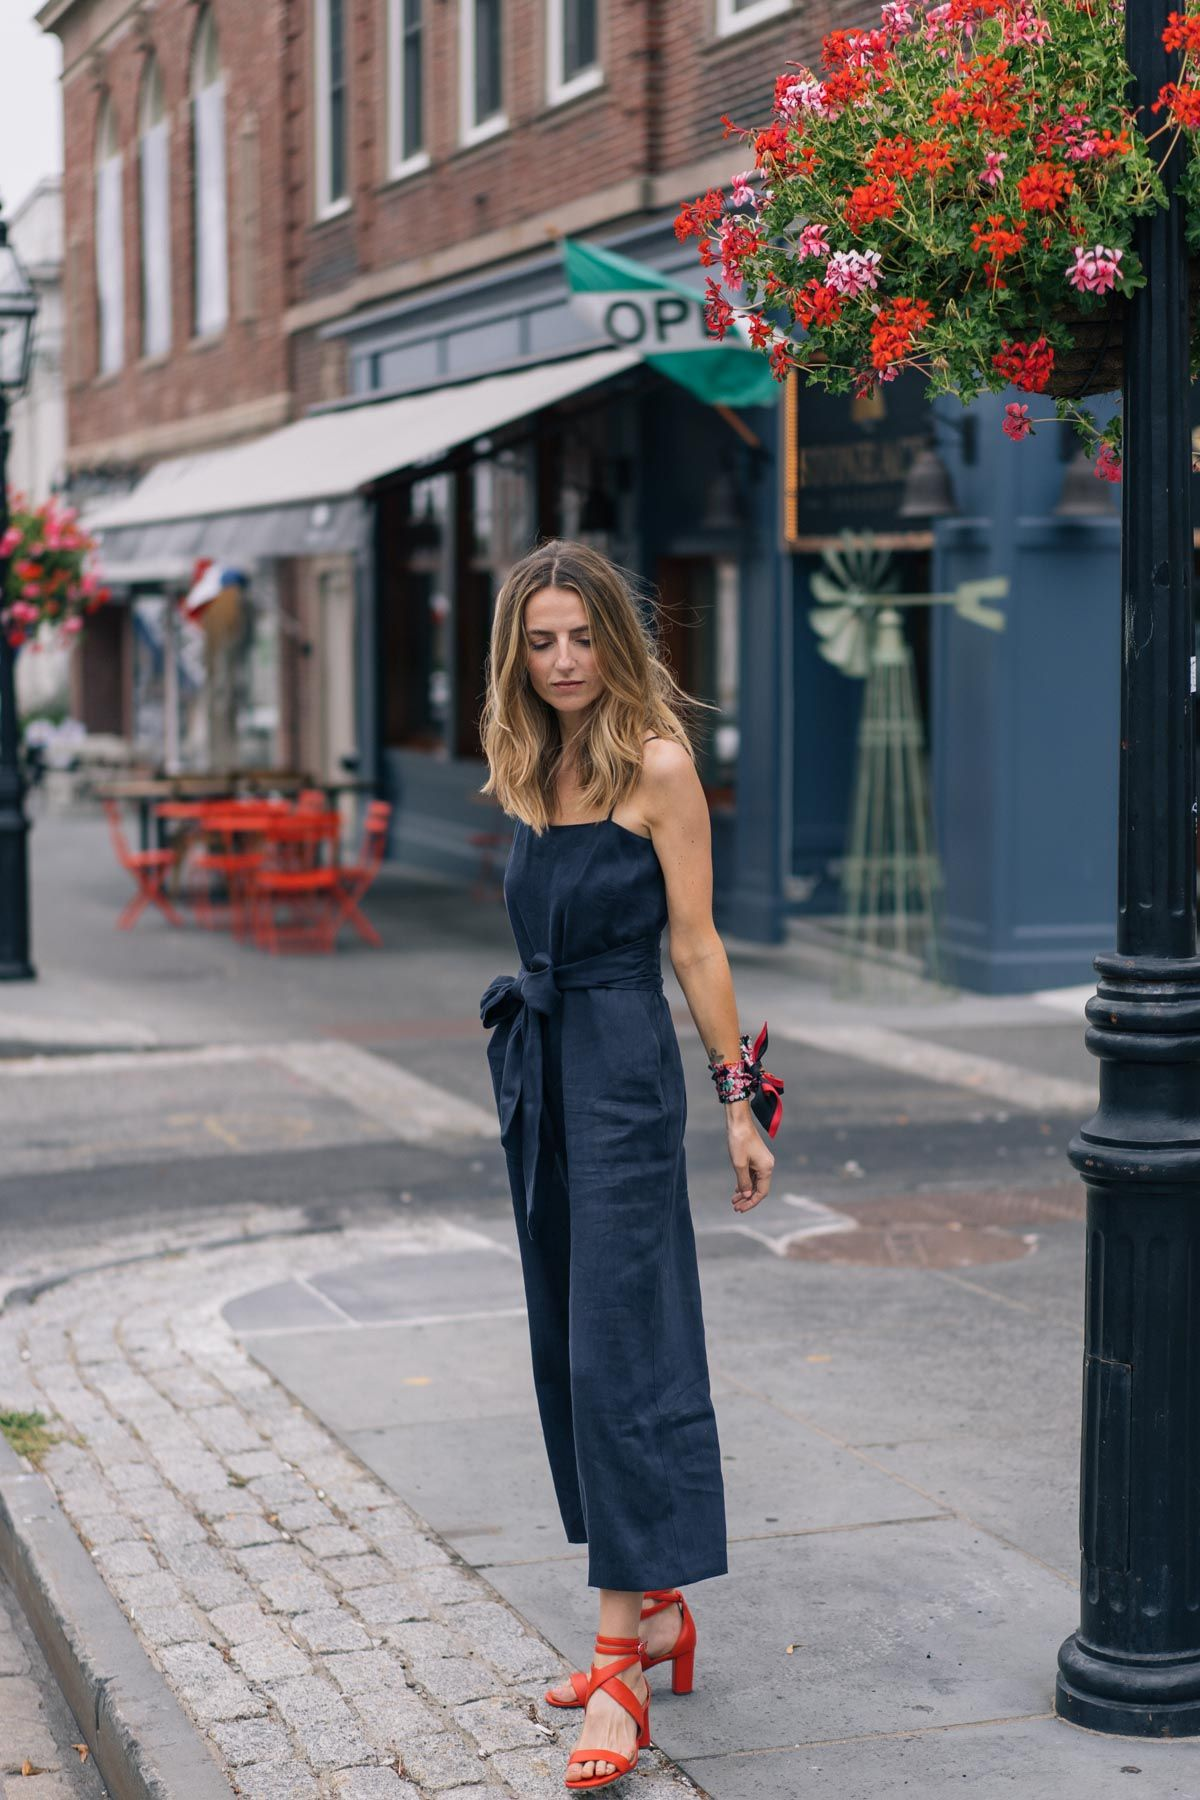 85e14af1edf248 Jess Ann Kirby pairs a navy jumpsuit with bold accessories like red leather  sandals